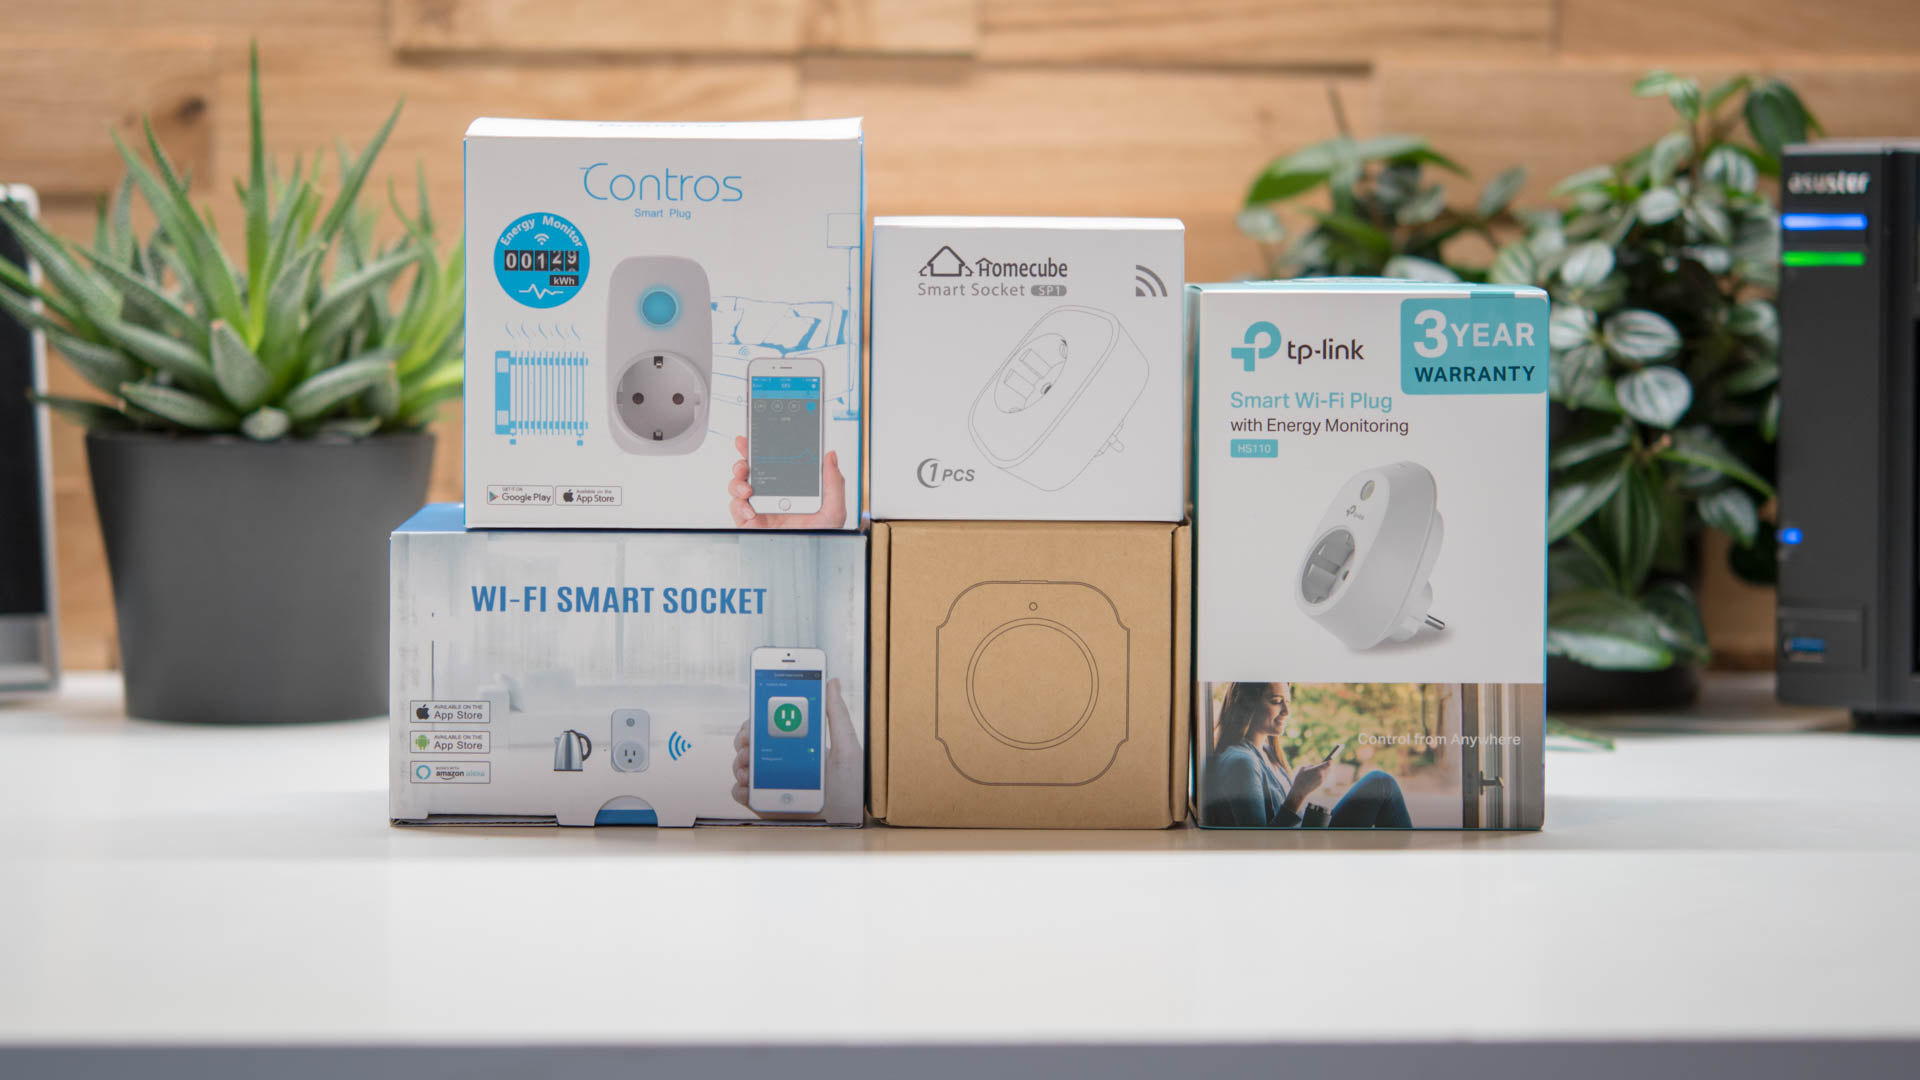 5x smart home steckdosen im test von tp link homecube broadlink meamor und bresuve techtest. Black Bedroom Furniture Sets. Home Design Ideas